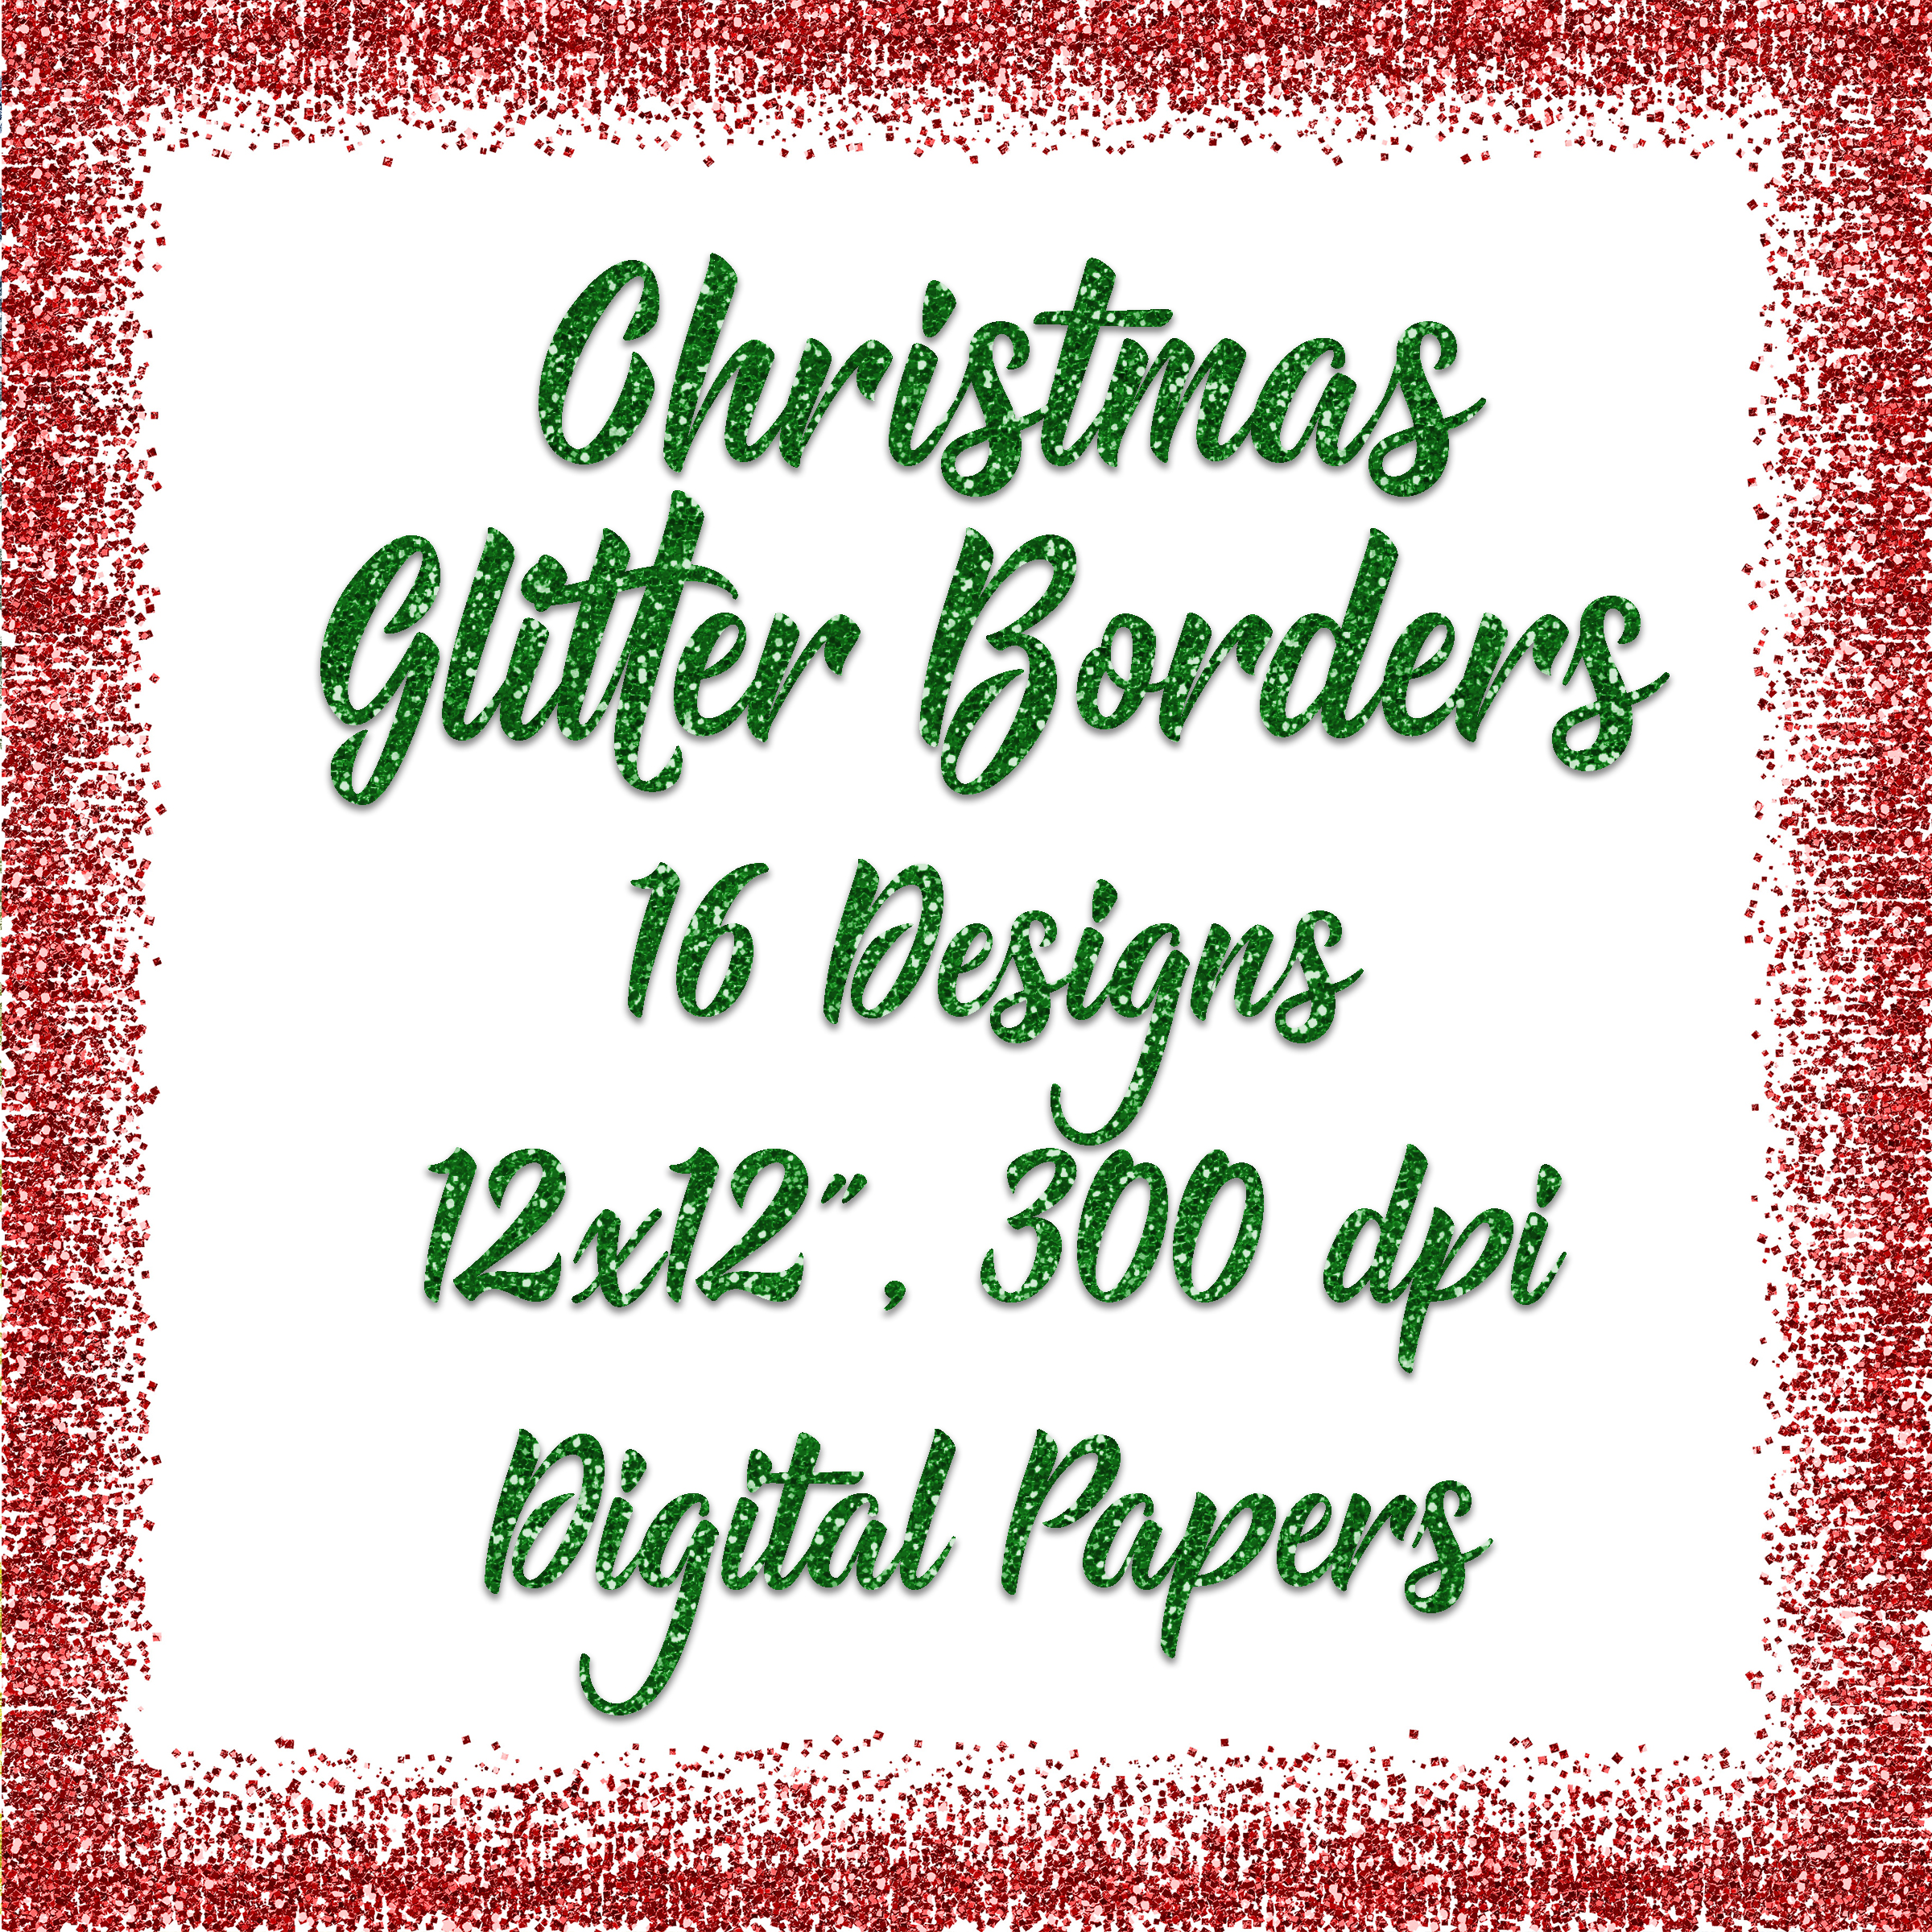 Christmas Glitter Borders Digital Paper Graphic Backgrounds By oldmarketdesigns - Image 5